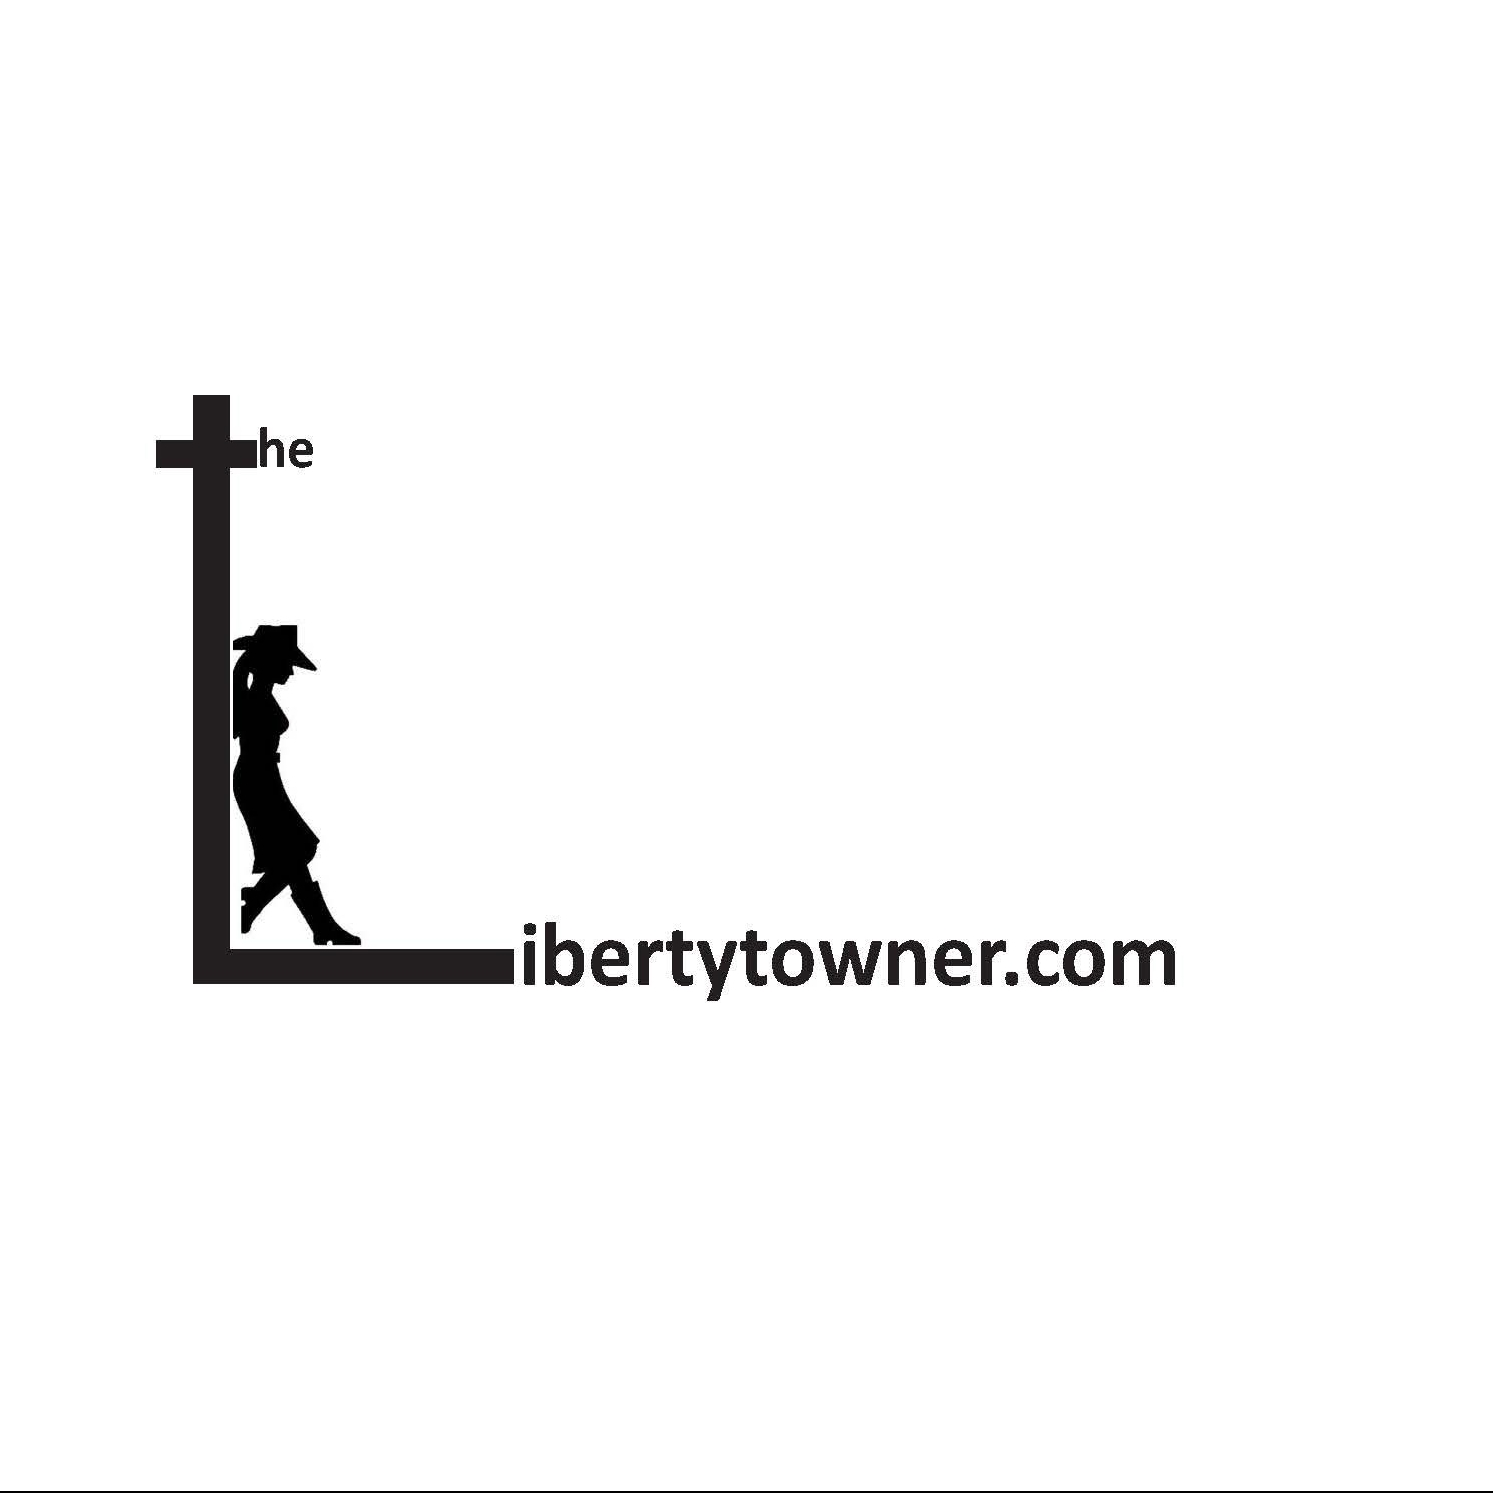 The Libertytowner